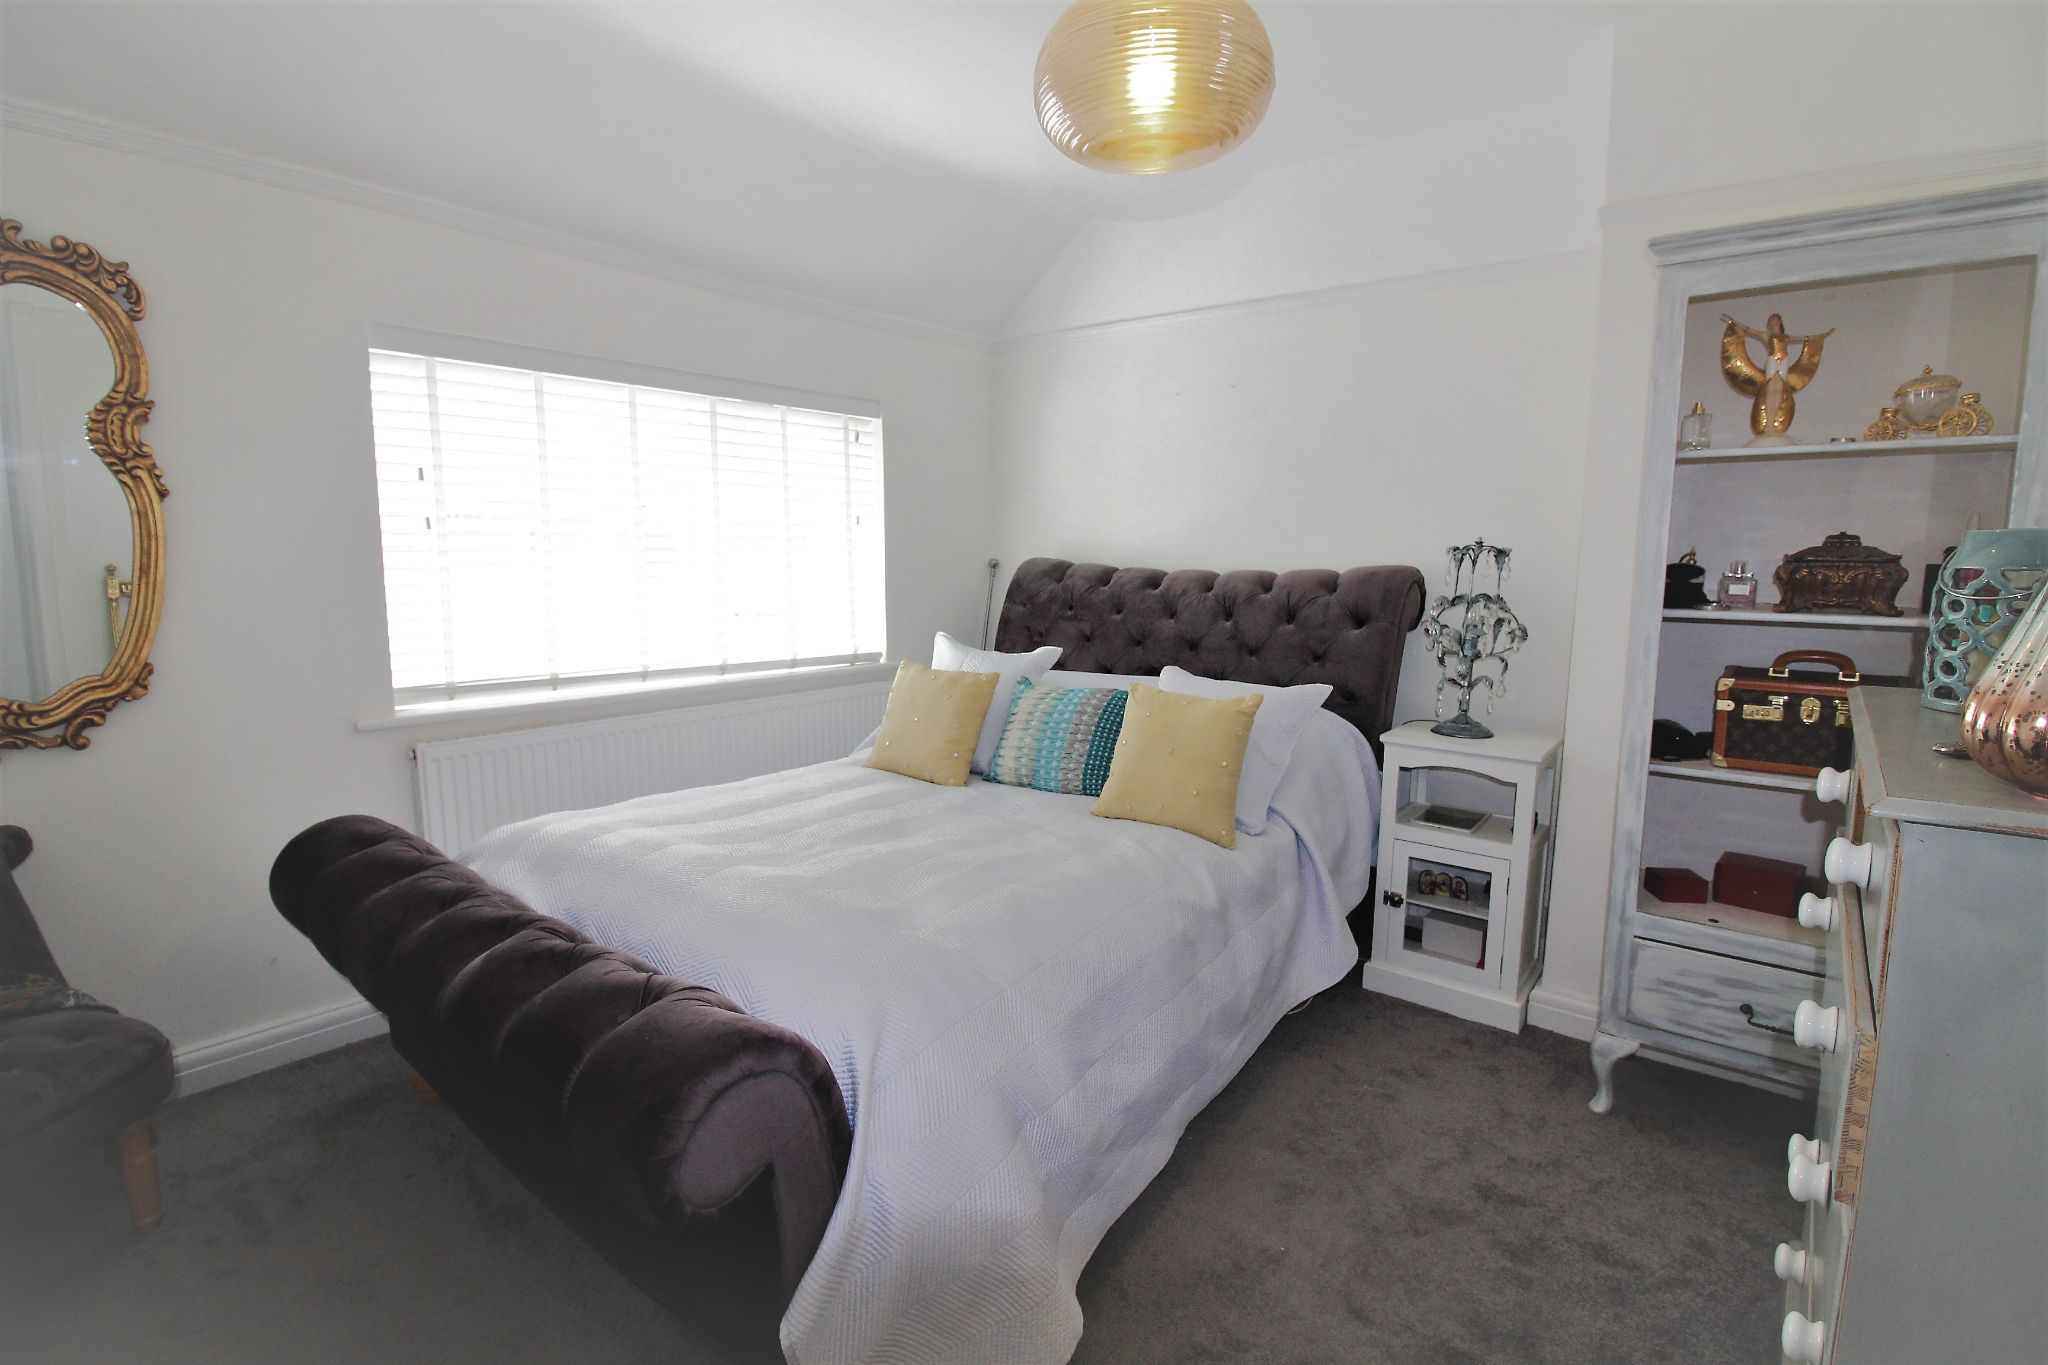 2 bedroom end terraced house For Sale in Solihull - Photograph 10.